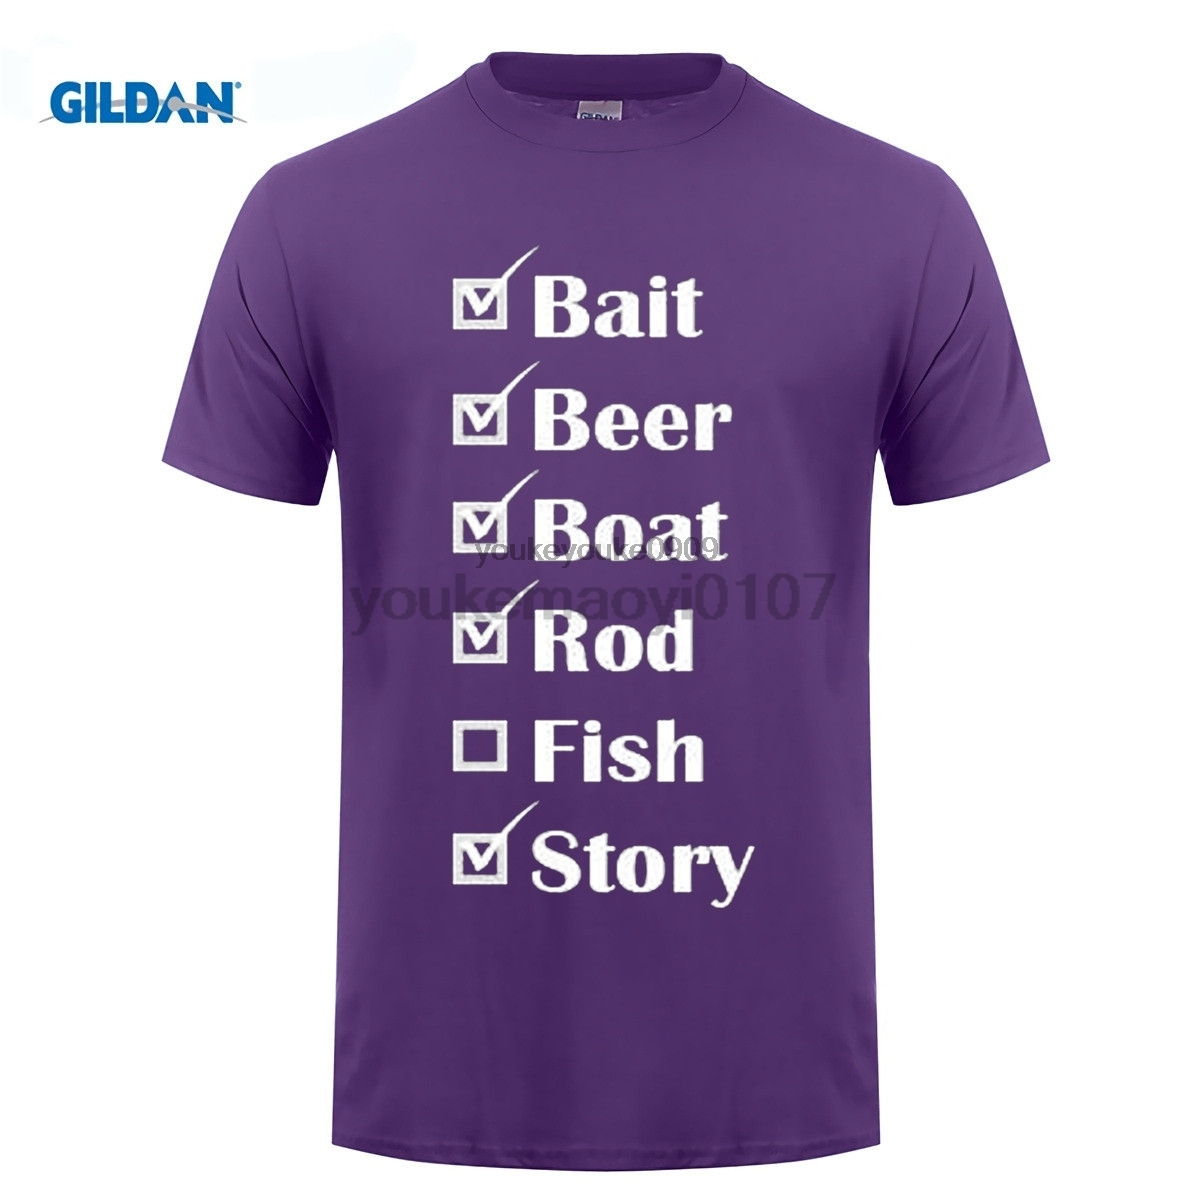 GILDAN designer t shirt Men 39 s O Neck Short Funny T Shirt T Shirt Lowest Price 100 Cotton Fishinger Checklist T Shirts in T Shirts from Men 39 s Clothing